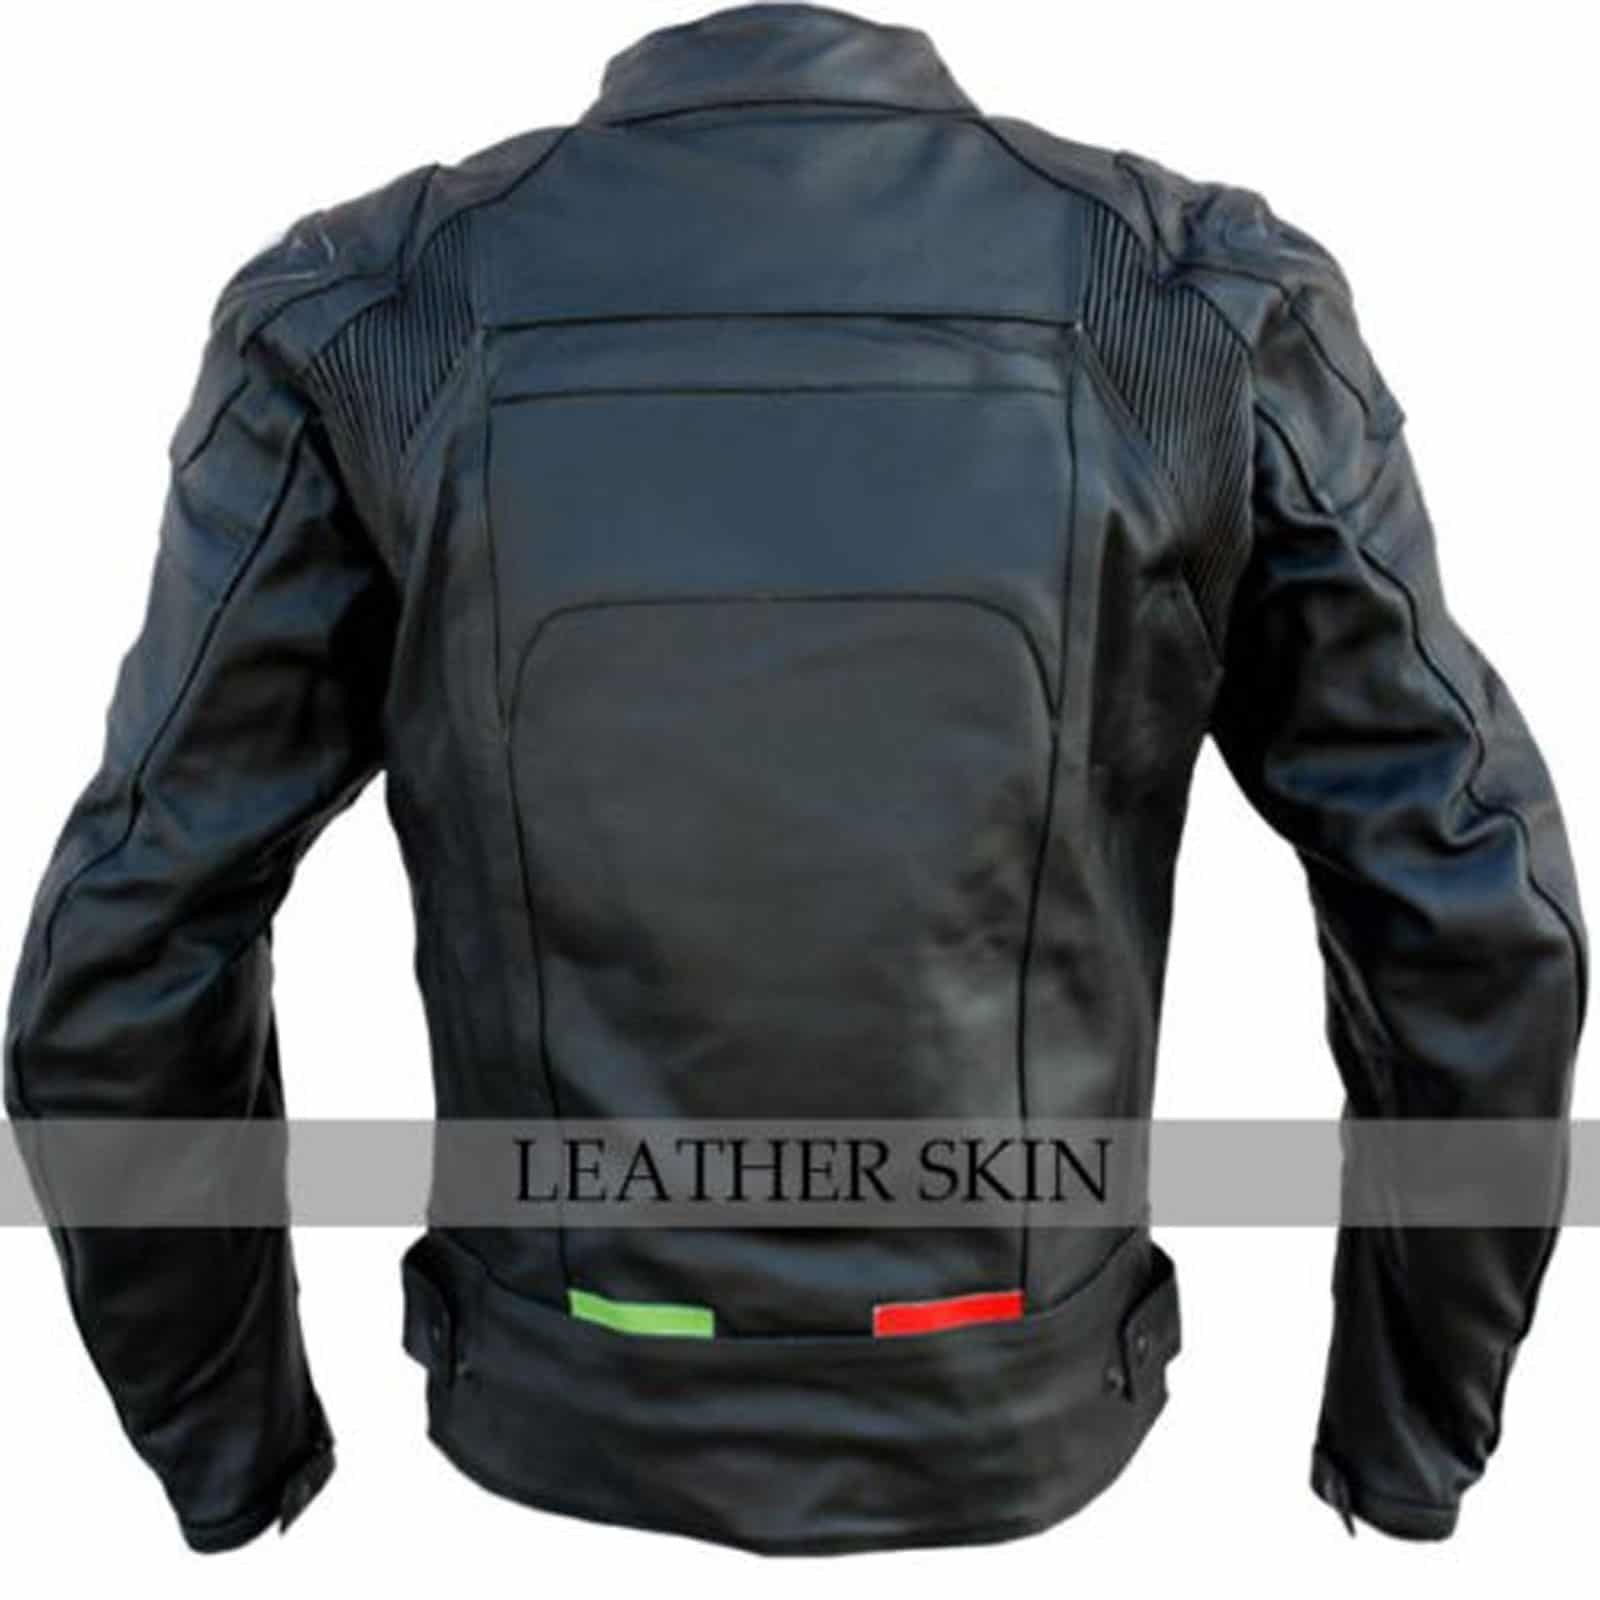 Motorcycle Jackets With Armor for sale